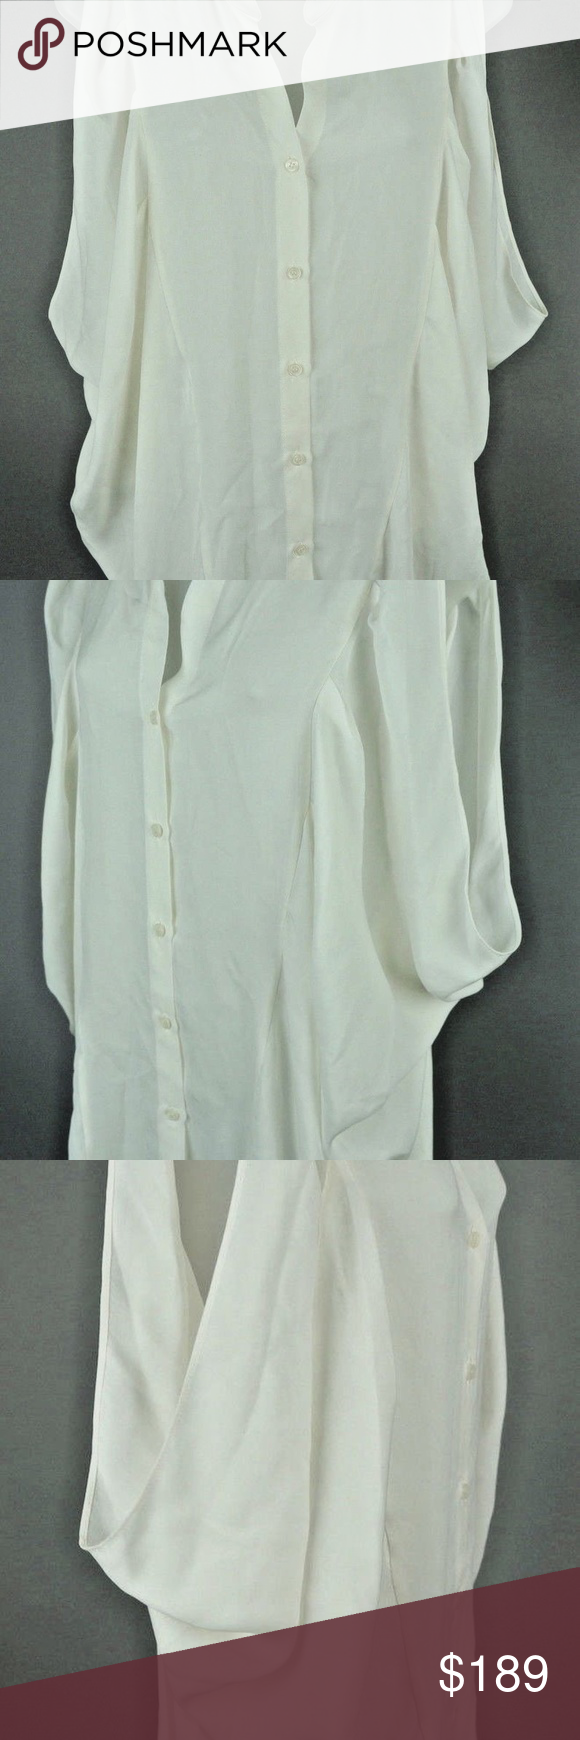 44976e5cbb9415 NWT Emerson Thorpe White Silk Butterfly Shirt NWT $245.00 Emerson Thorpe  White Silk Butterfly Shirt Top Sz: M Condition:New with tags This is one of  the ...